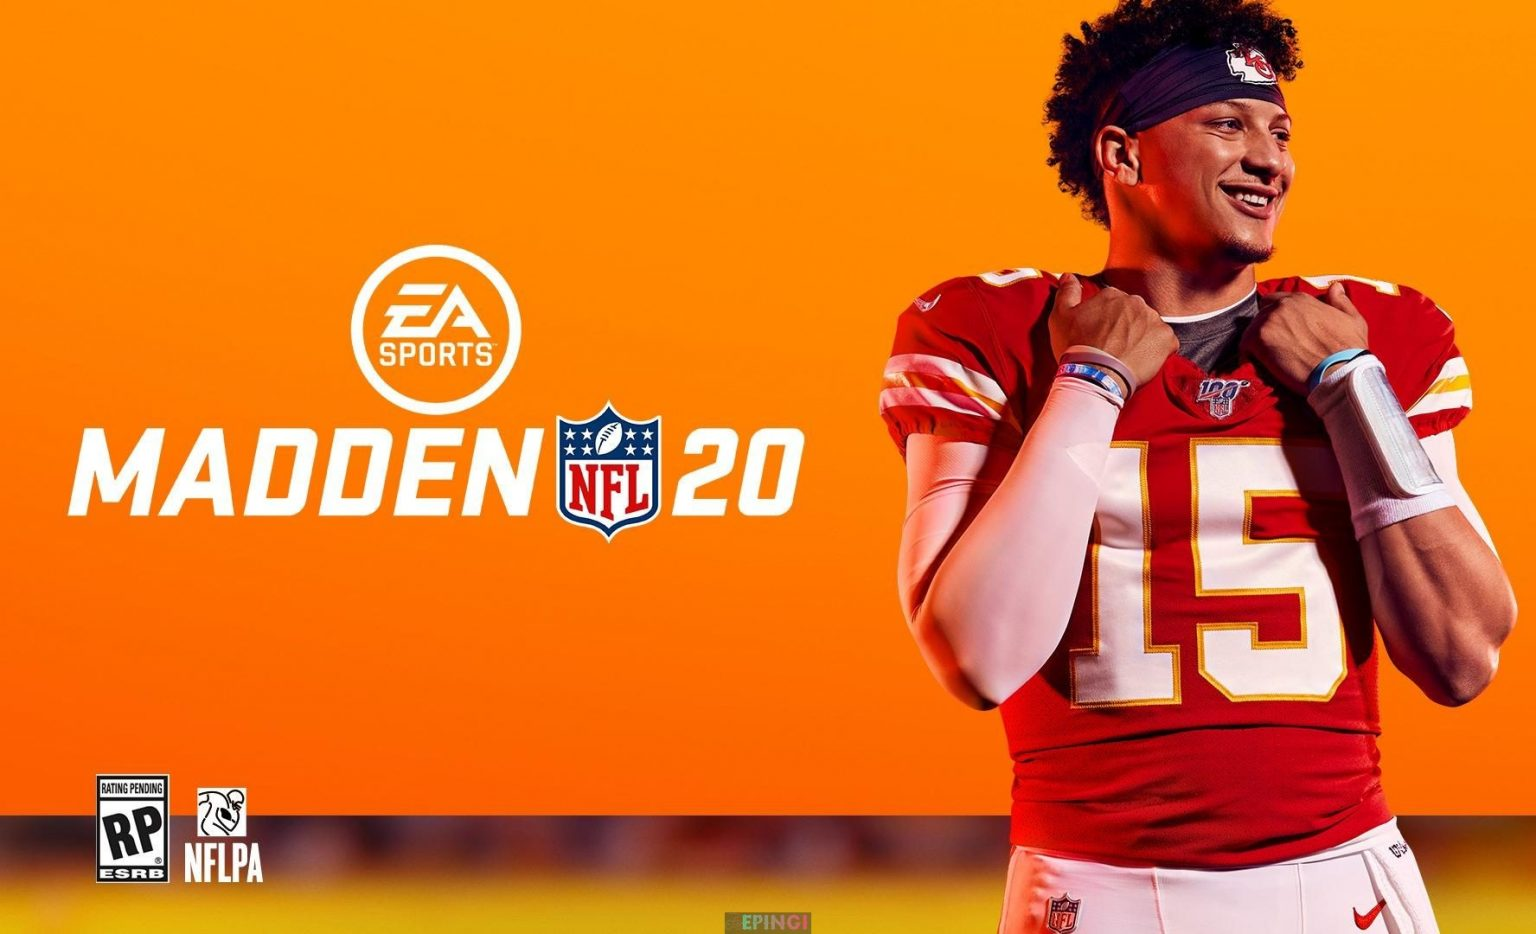 Madden NFL 20 Apk iOS Latest Version Free Download